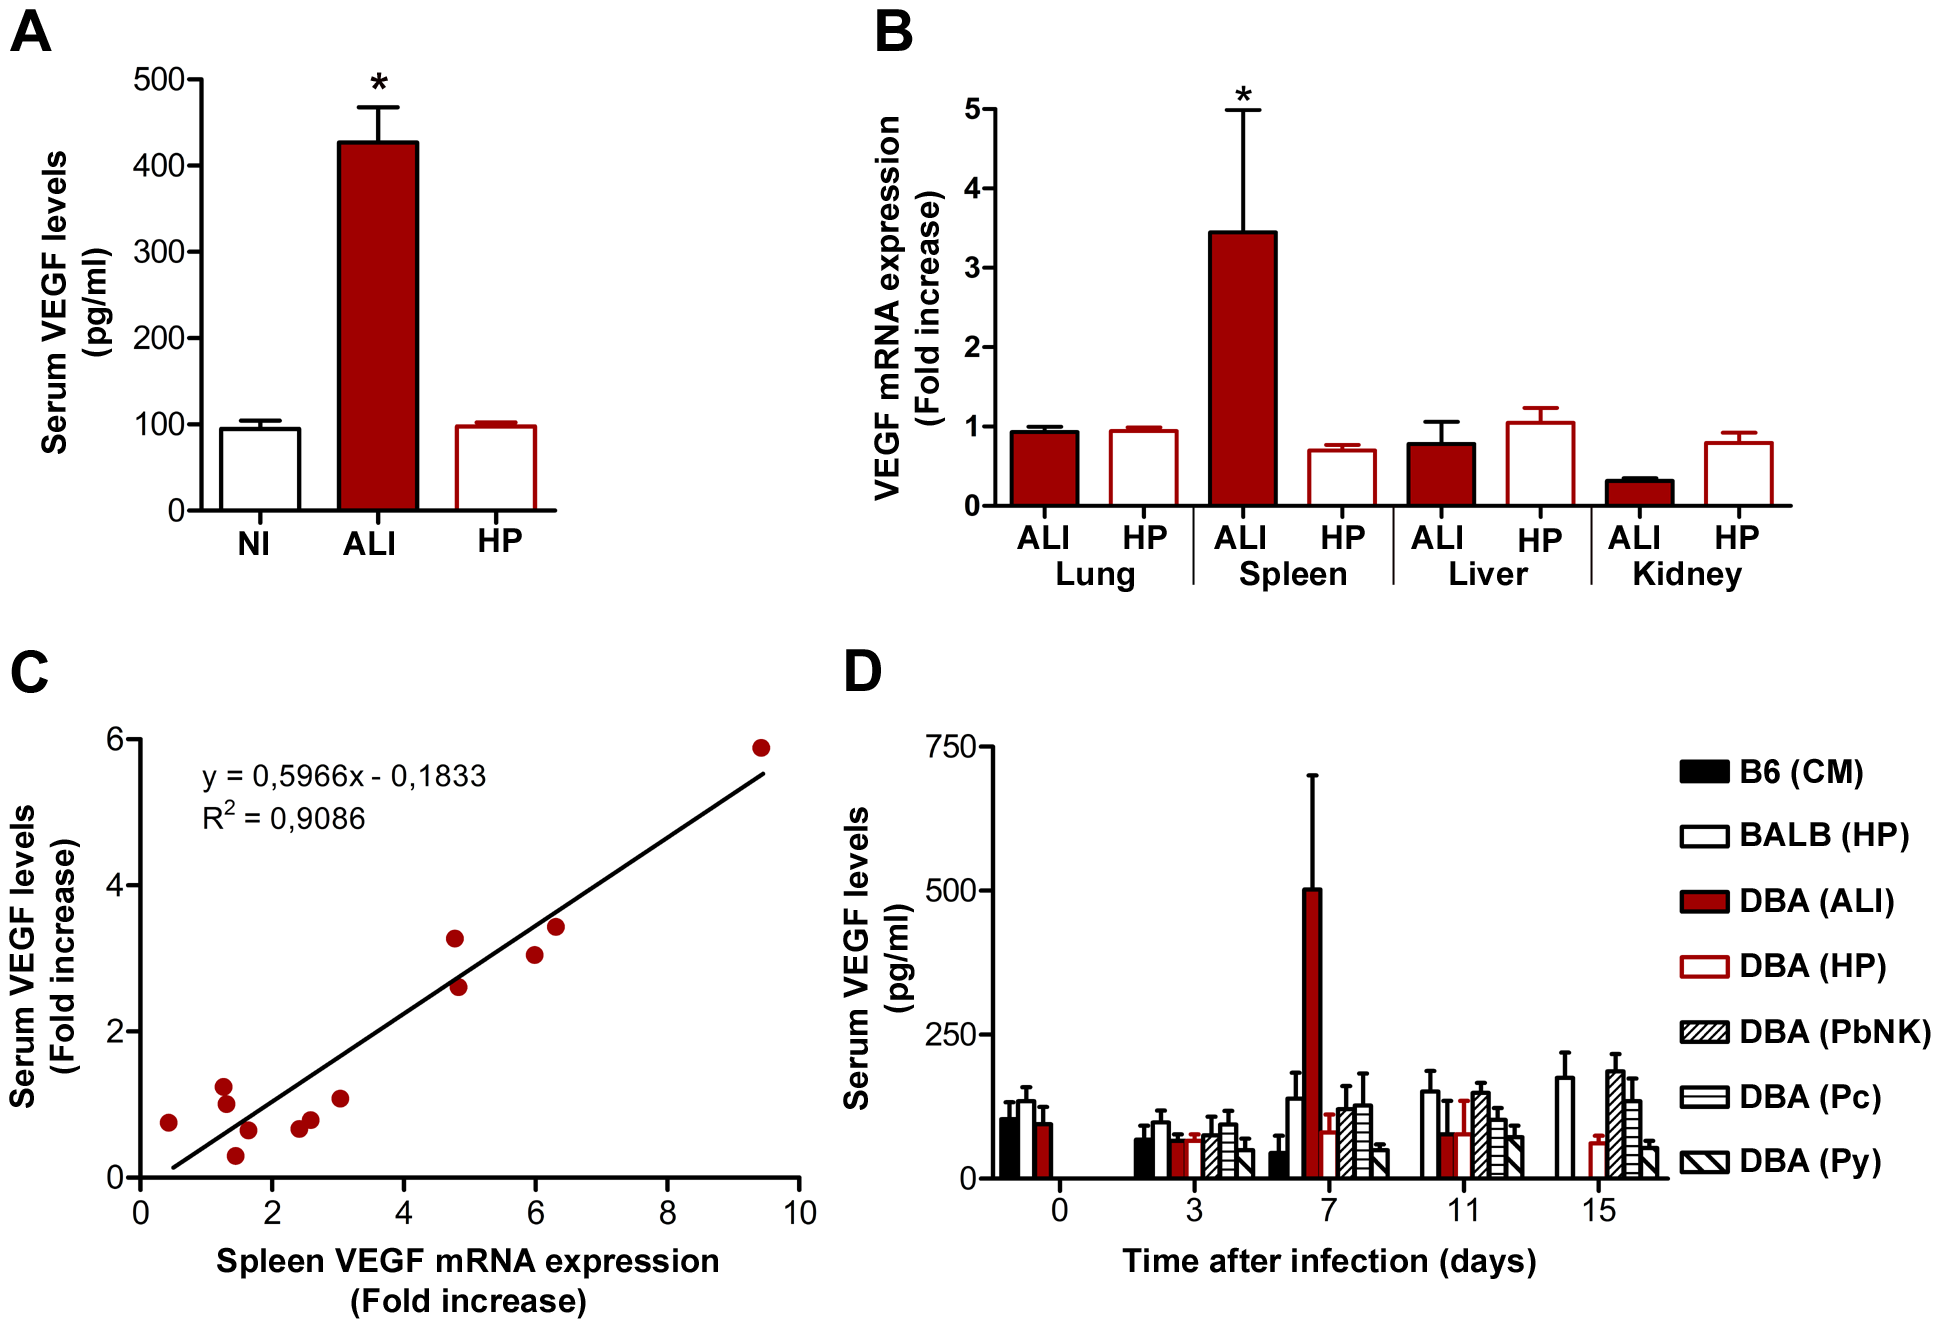 VEGF correlates with ALI onset during malaria infection.